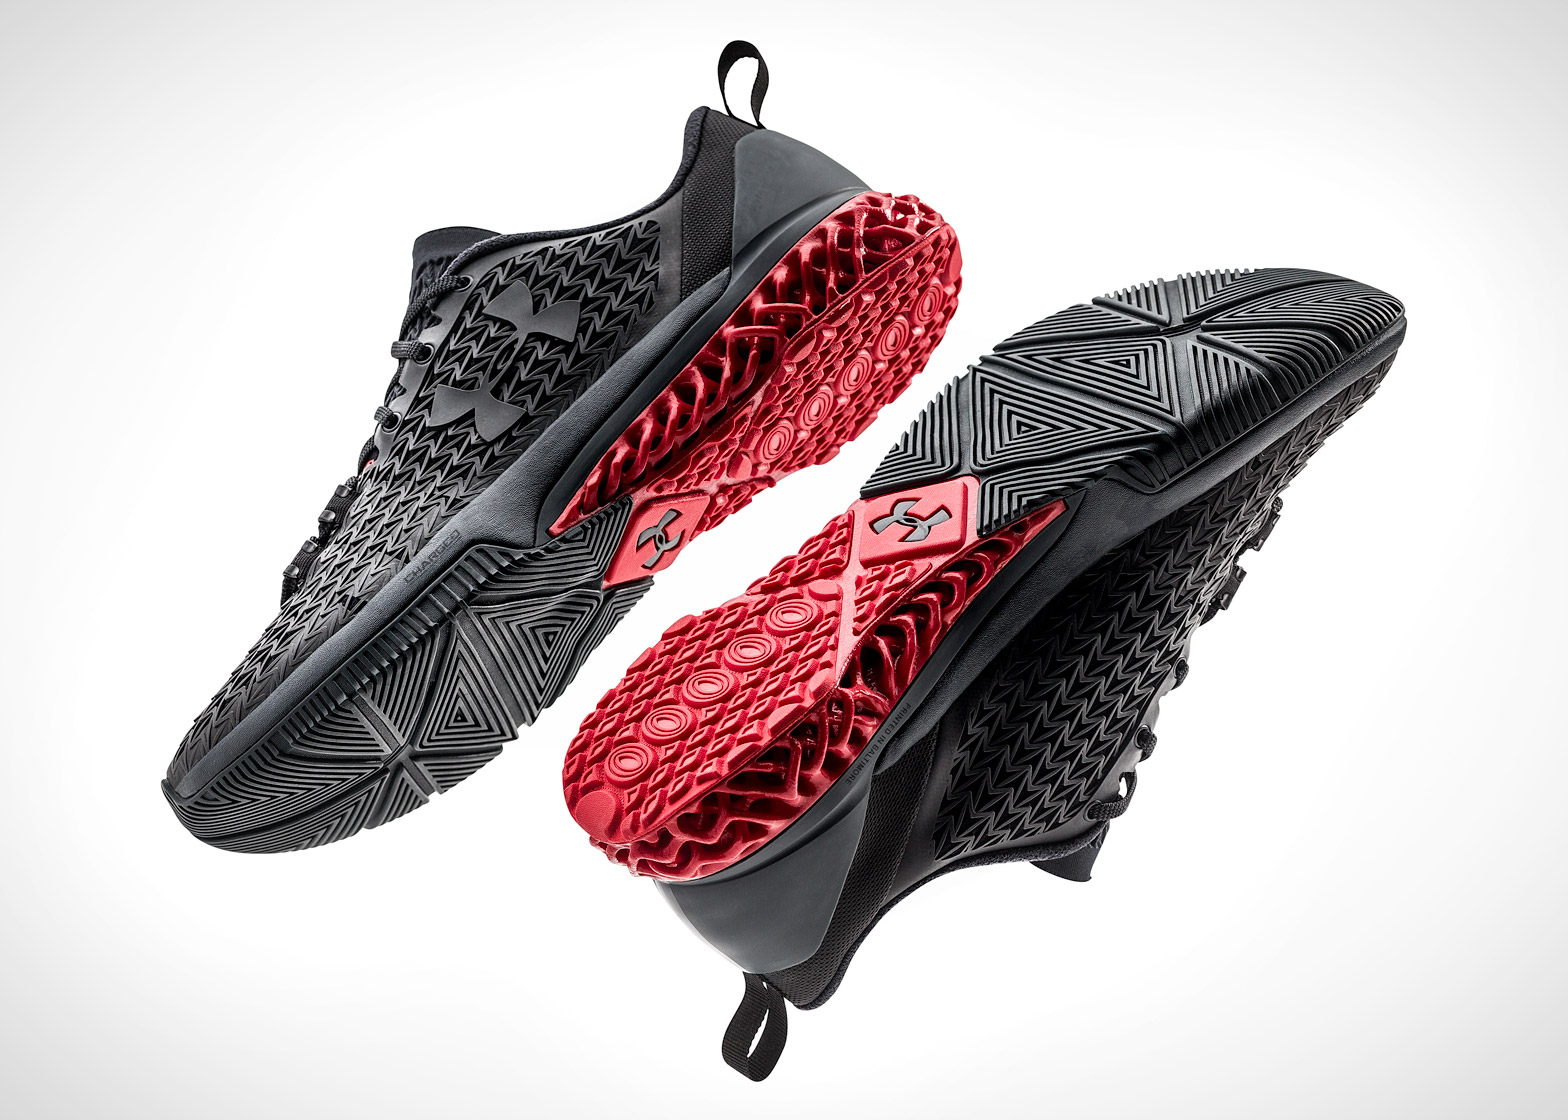 3D-printed trainer designed by Under Armour